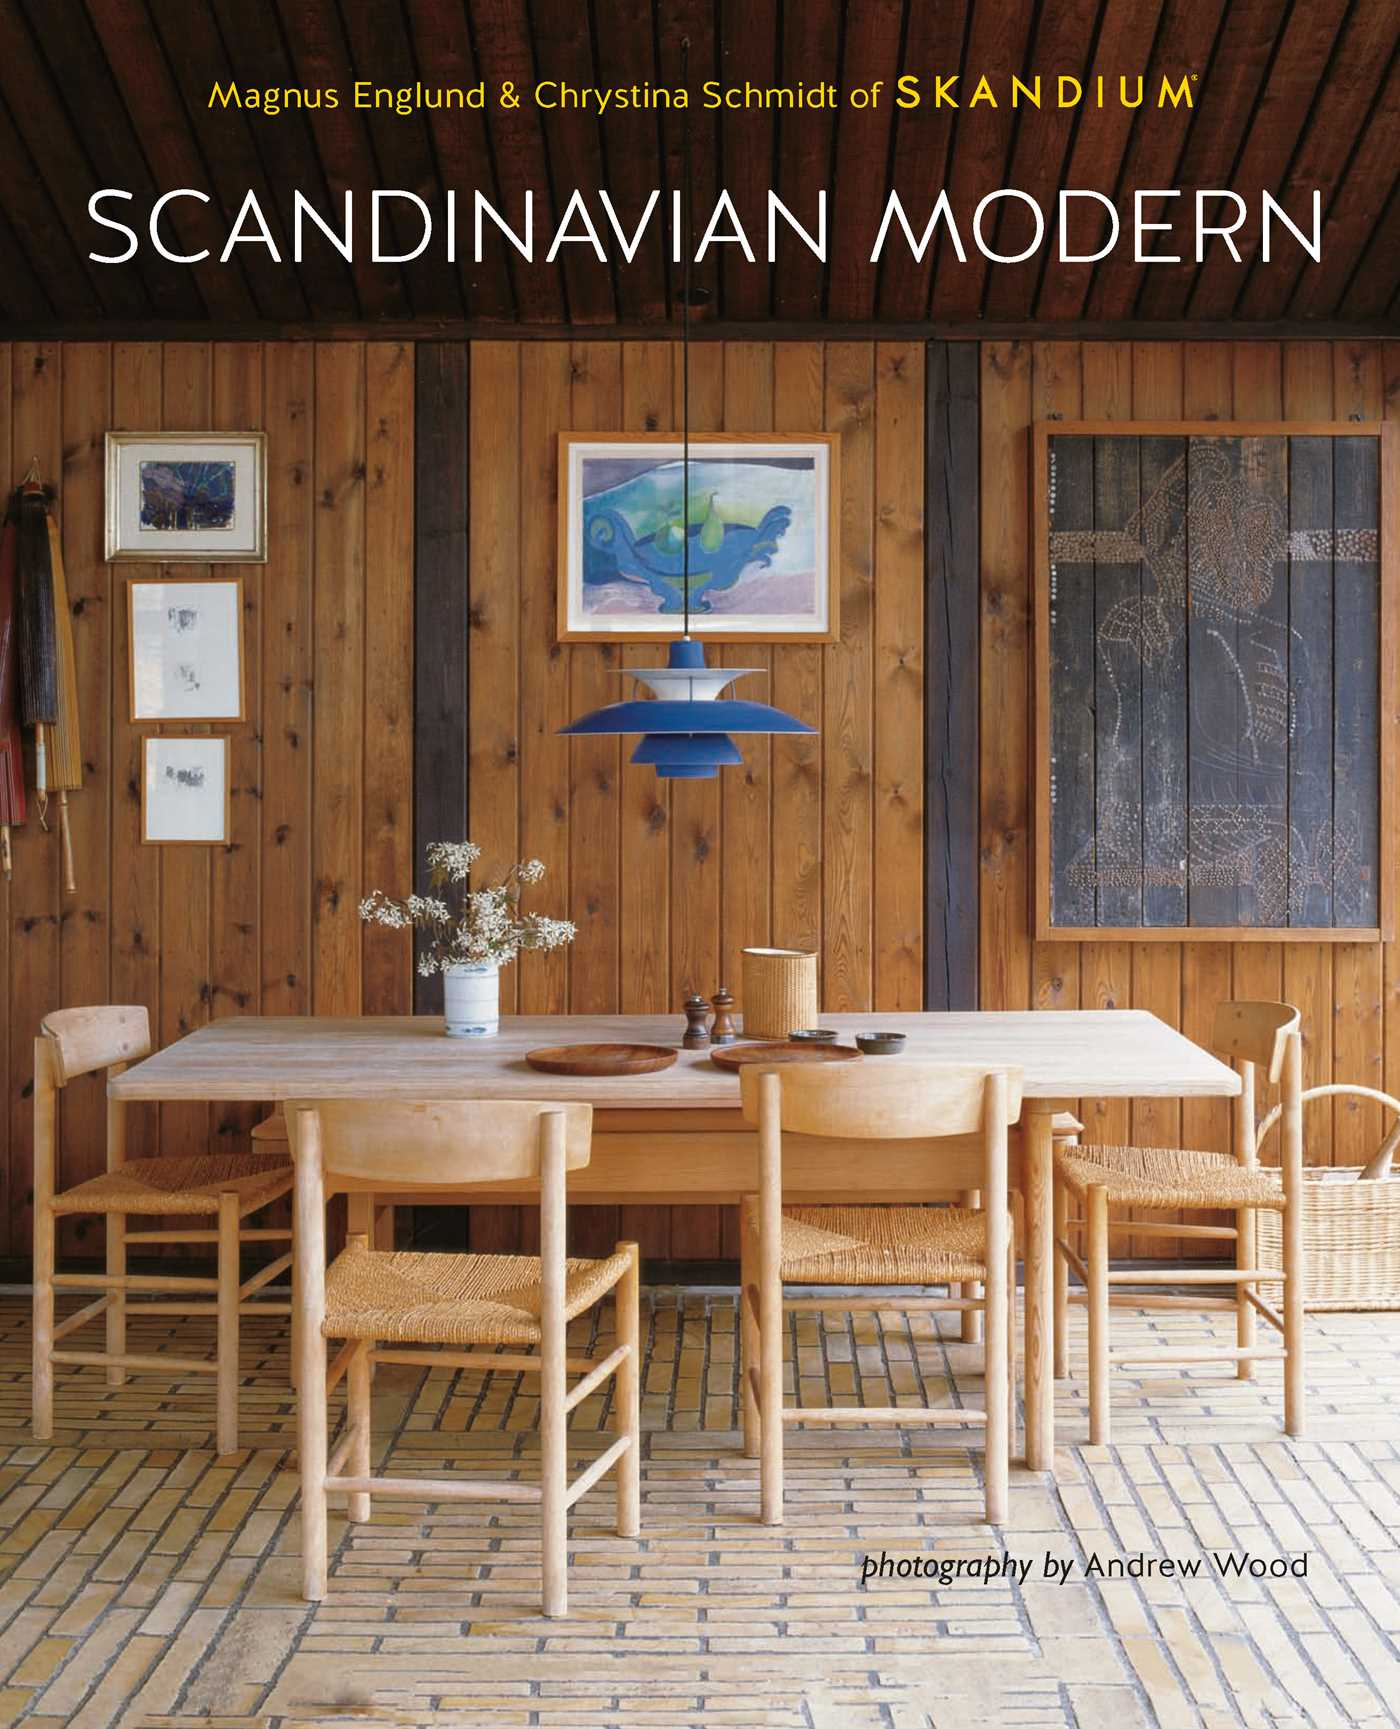 Scandinavian Interior Design Books Scandinavian Modern Book By Magnus Englund Christina